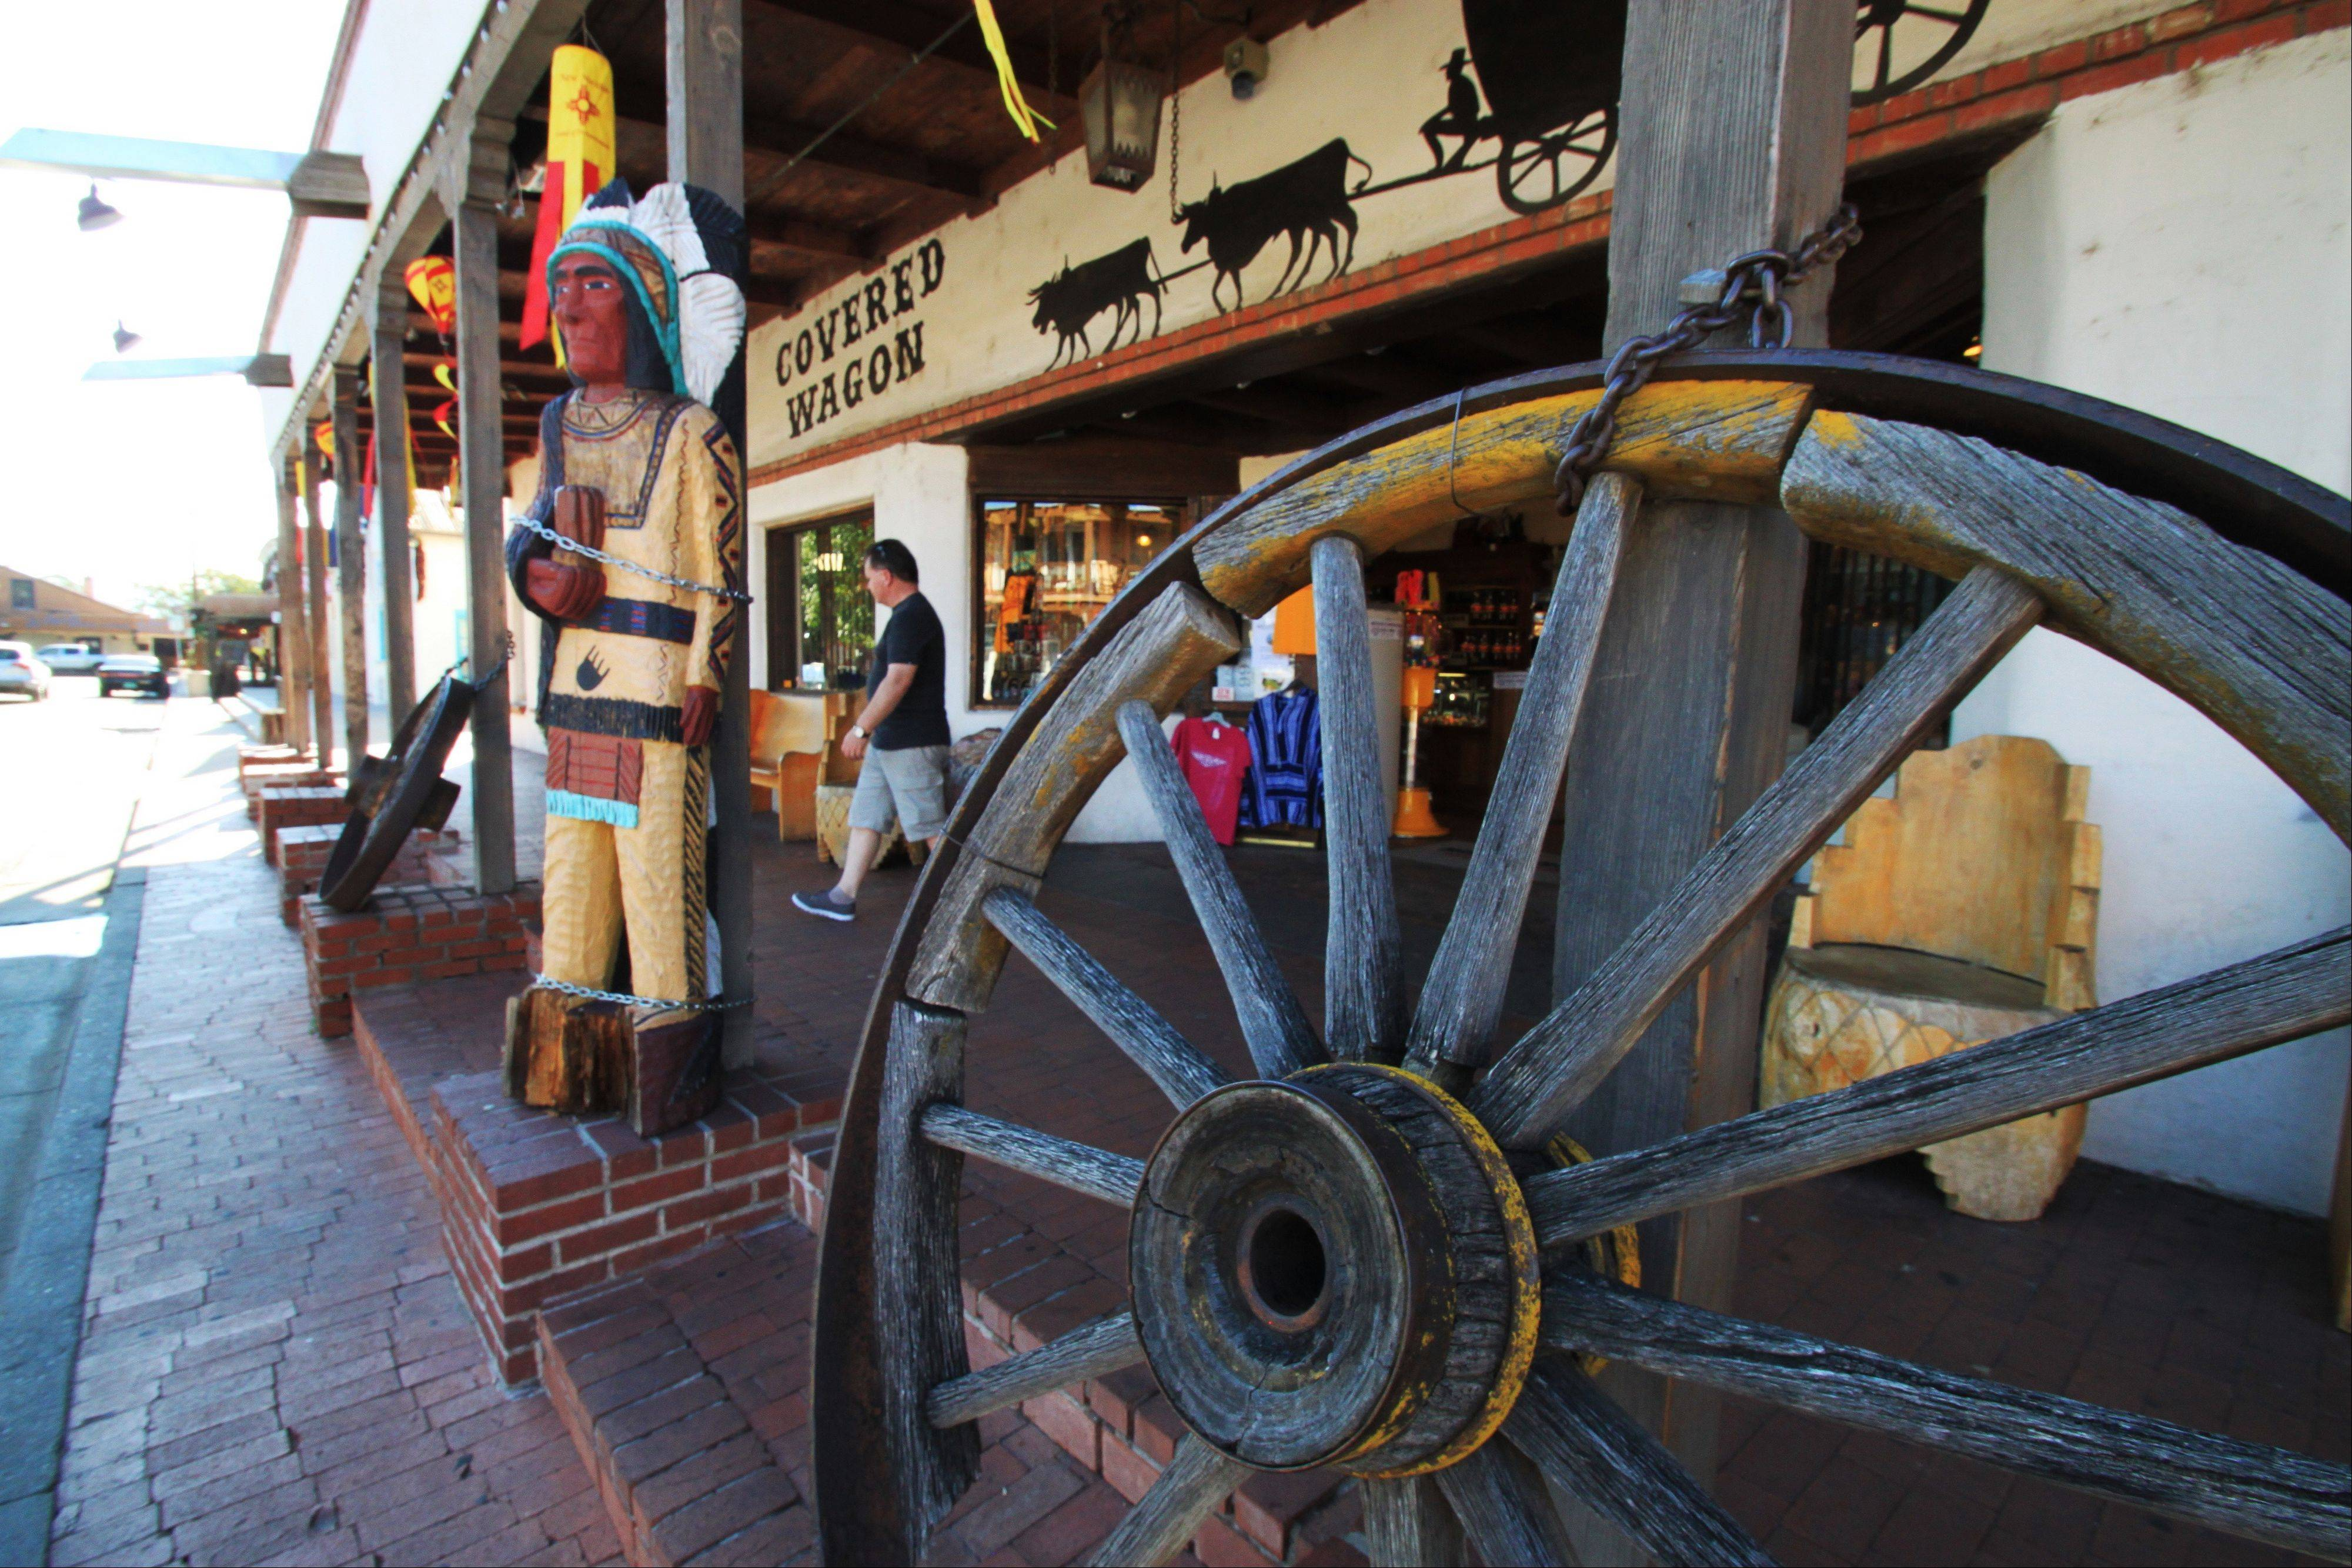 The Old Town Plaza area boasts shops and restaurants as well as brick sidewalks and a collection of adobe buildings.